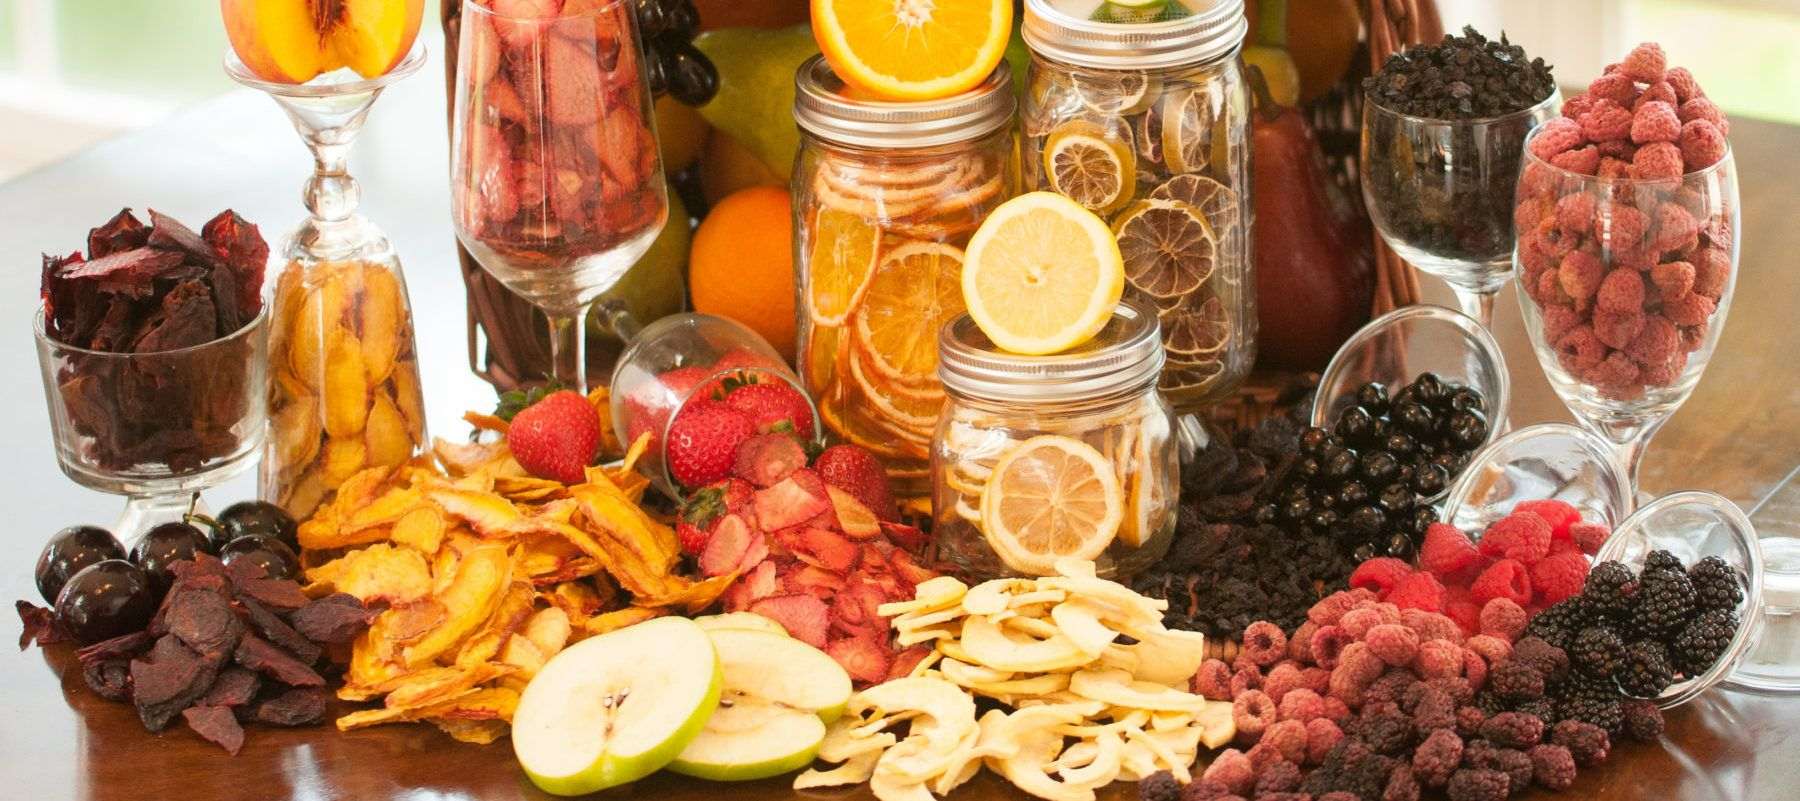 Learn to dehydrate food everything you need to know about